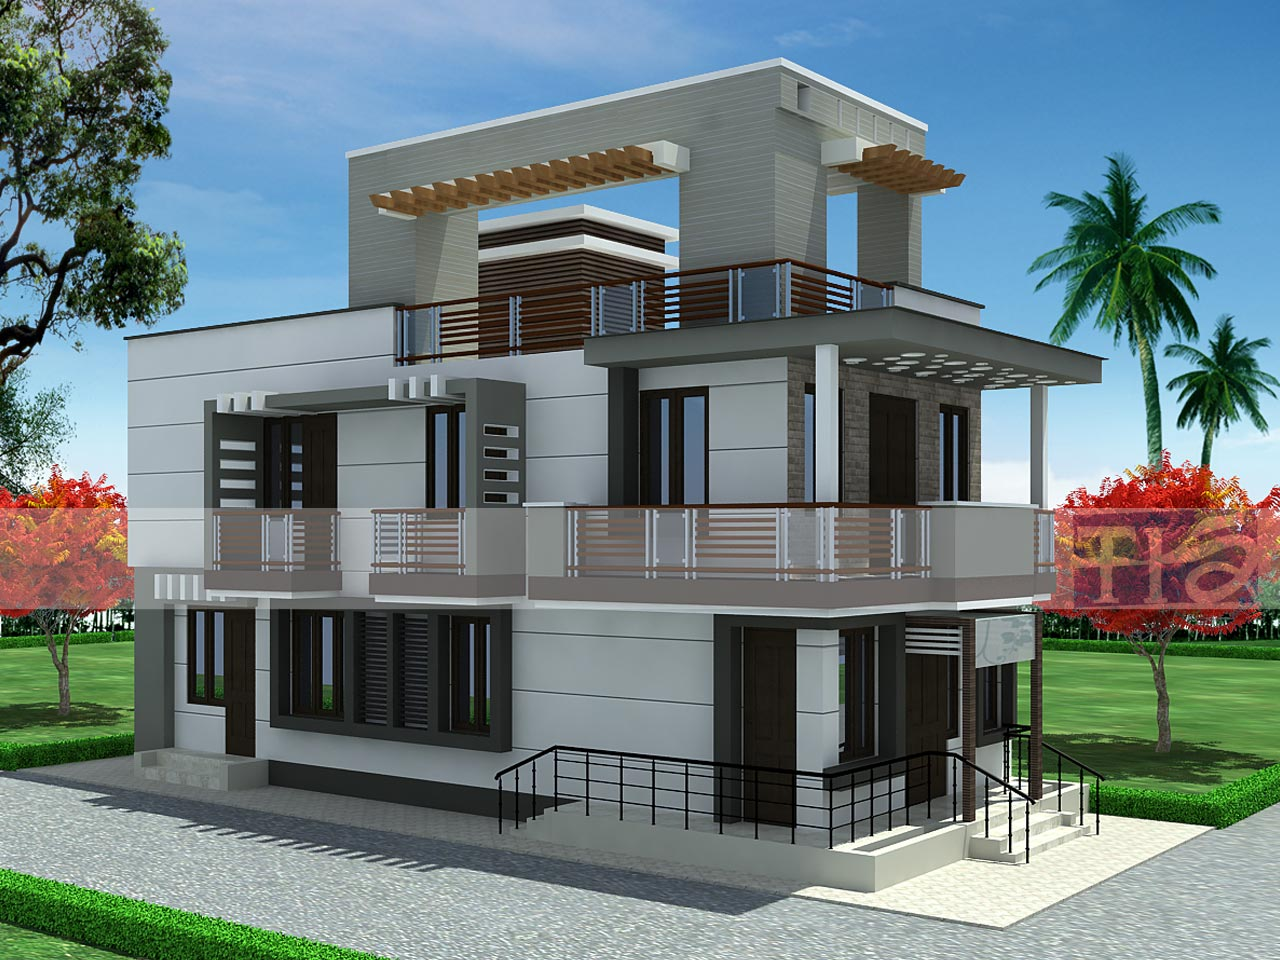 ... exterior design 7 well suited alluring ideas simply simple ... LMLQPQK